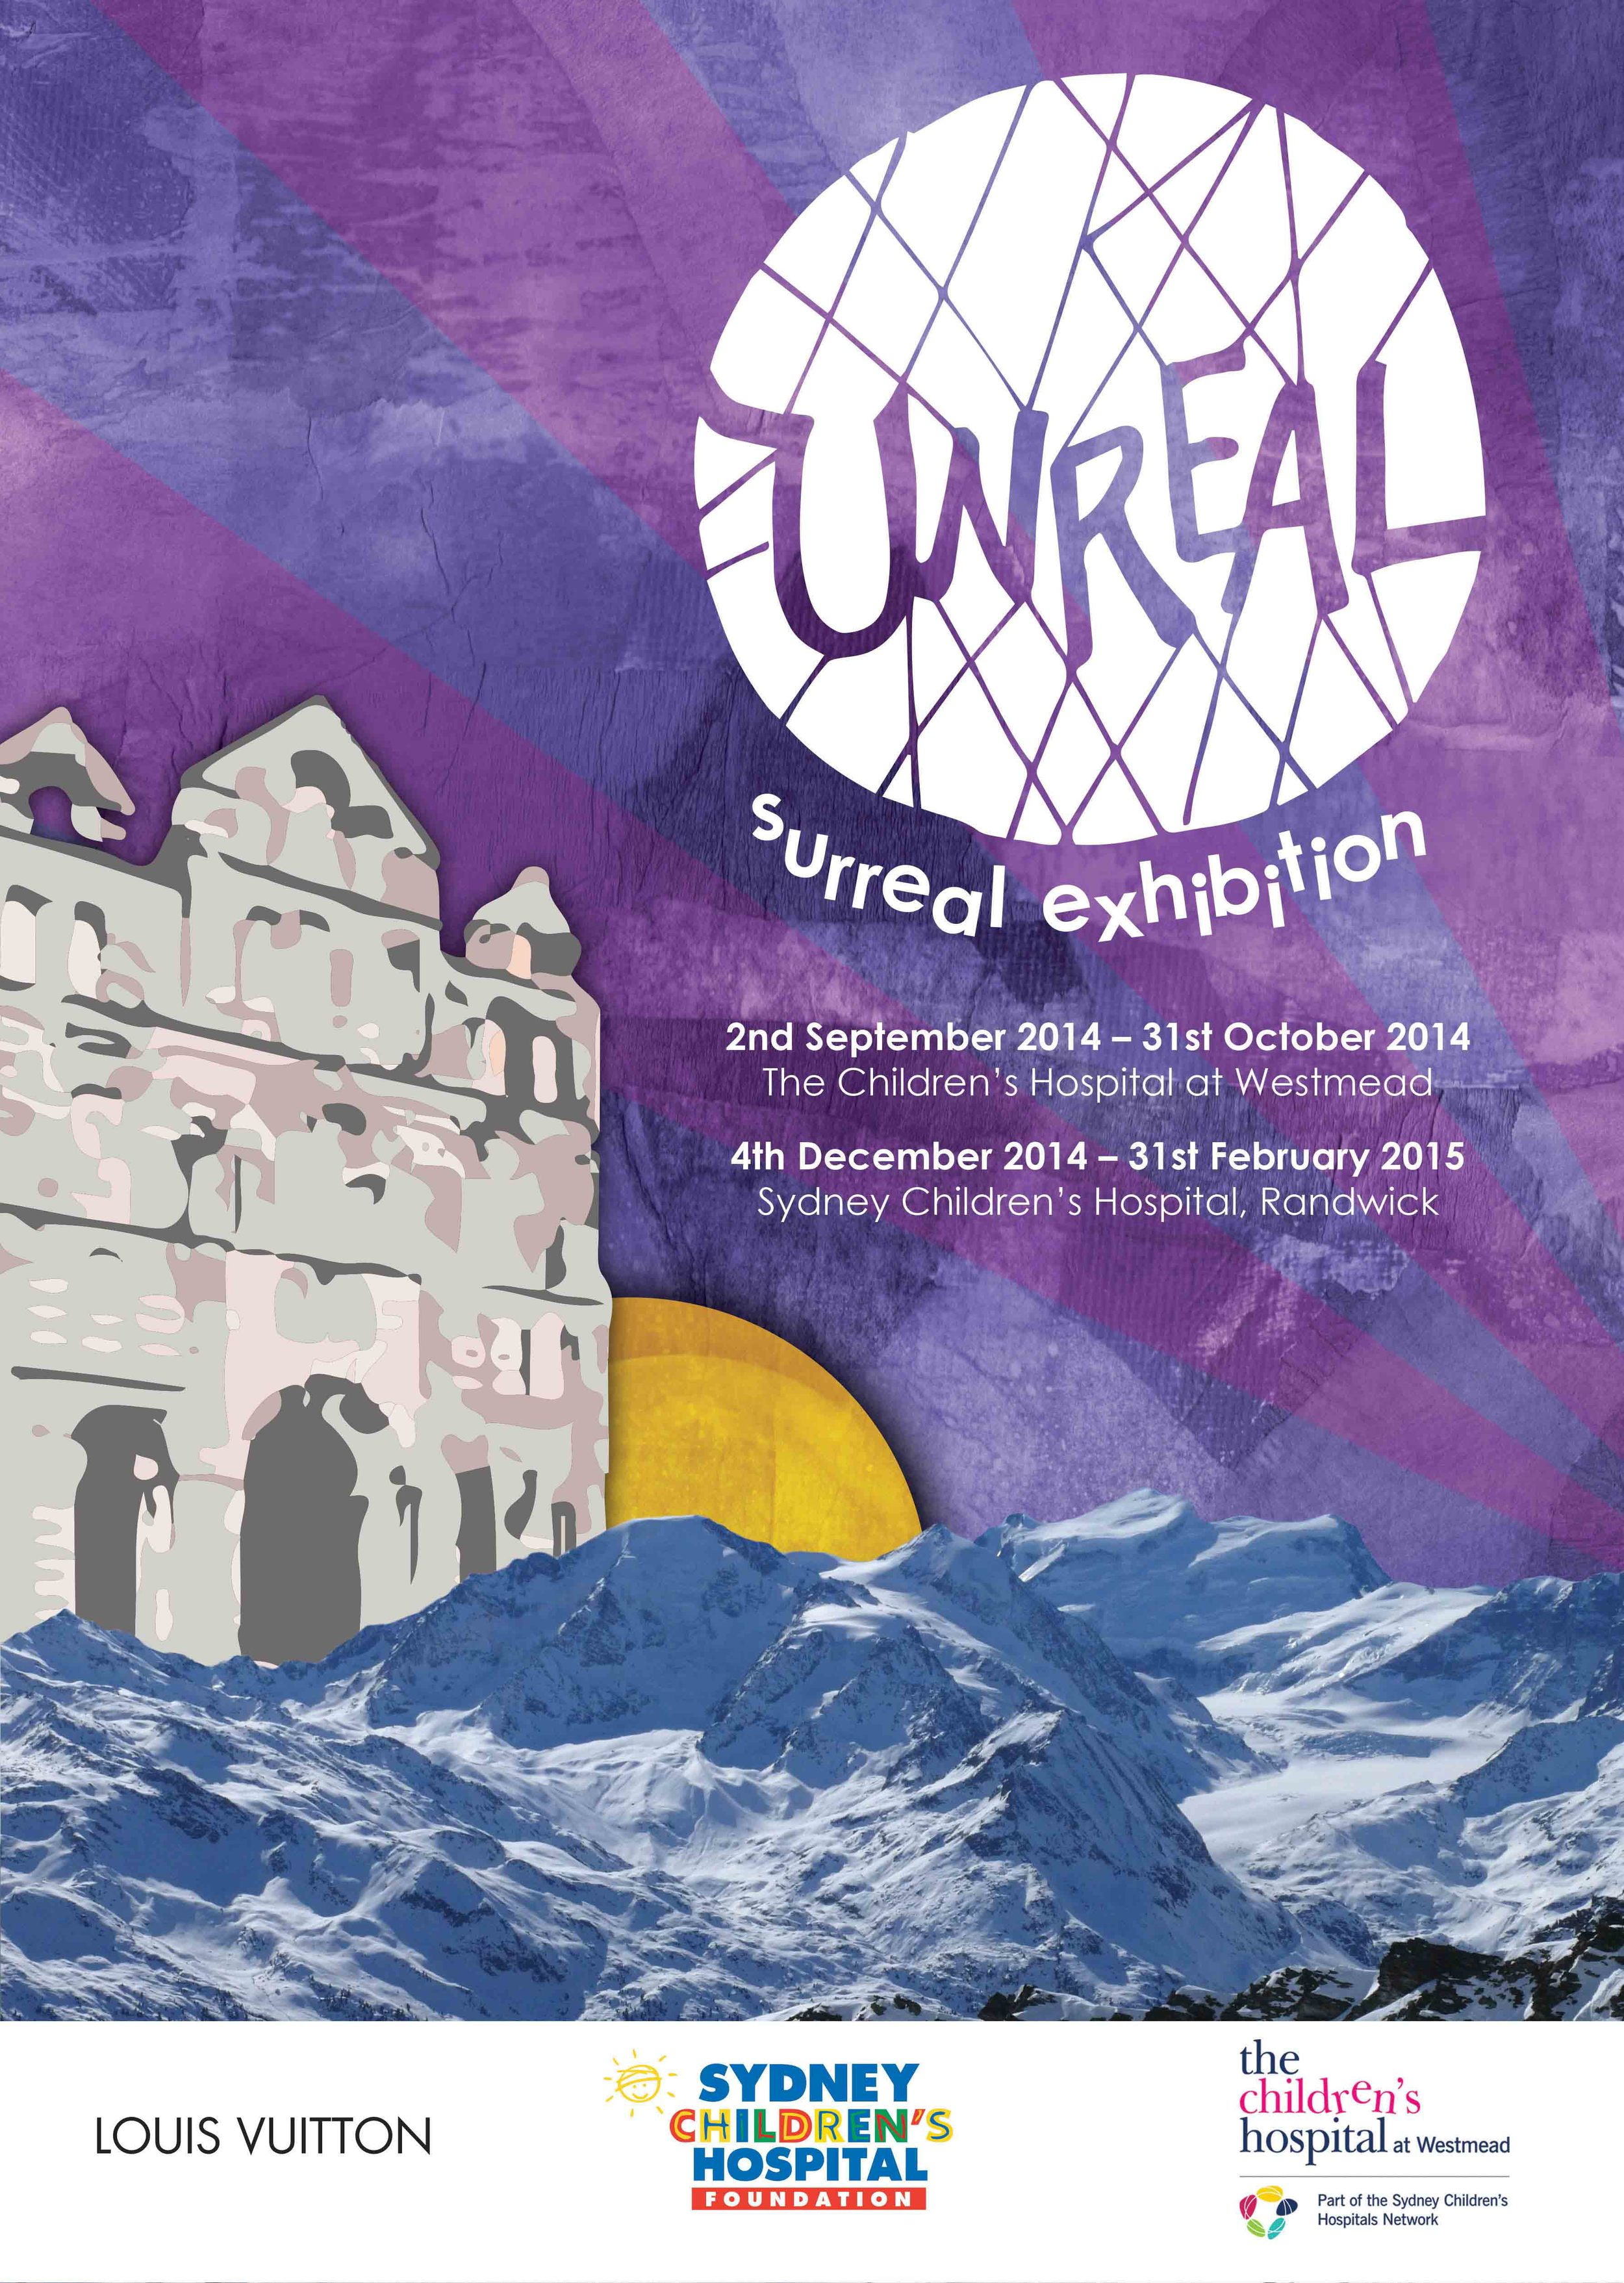 'Unreal' Surrealism Exhibition - 'The Sydney Children's Hospital' and 'The Children's Hospital Westmead'